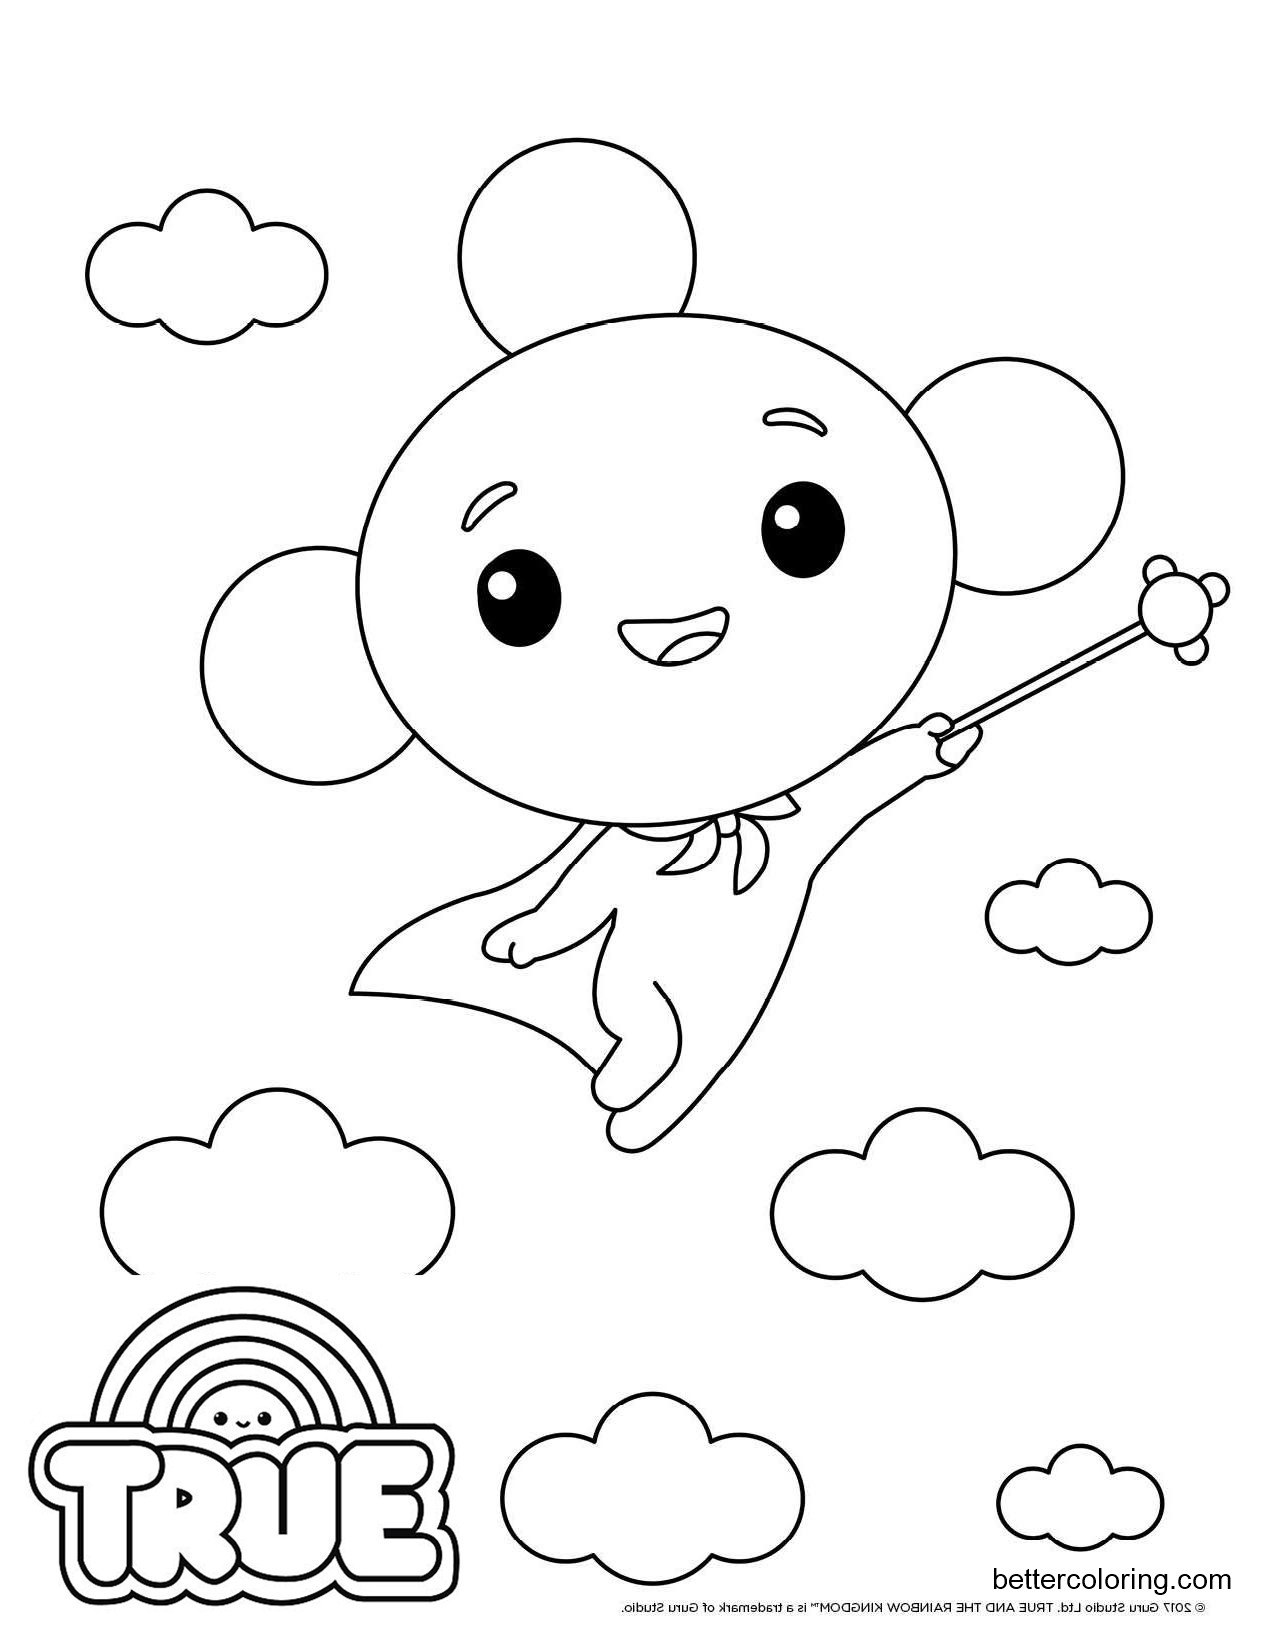 Free True and the Rainbow Kingdom Coloring Pages Rainbow King Outline printable